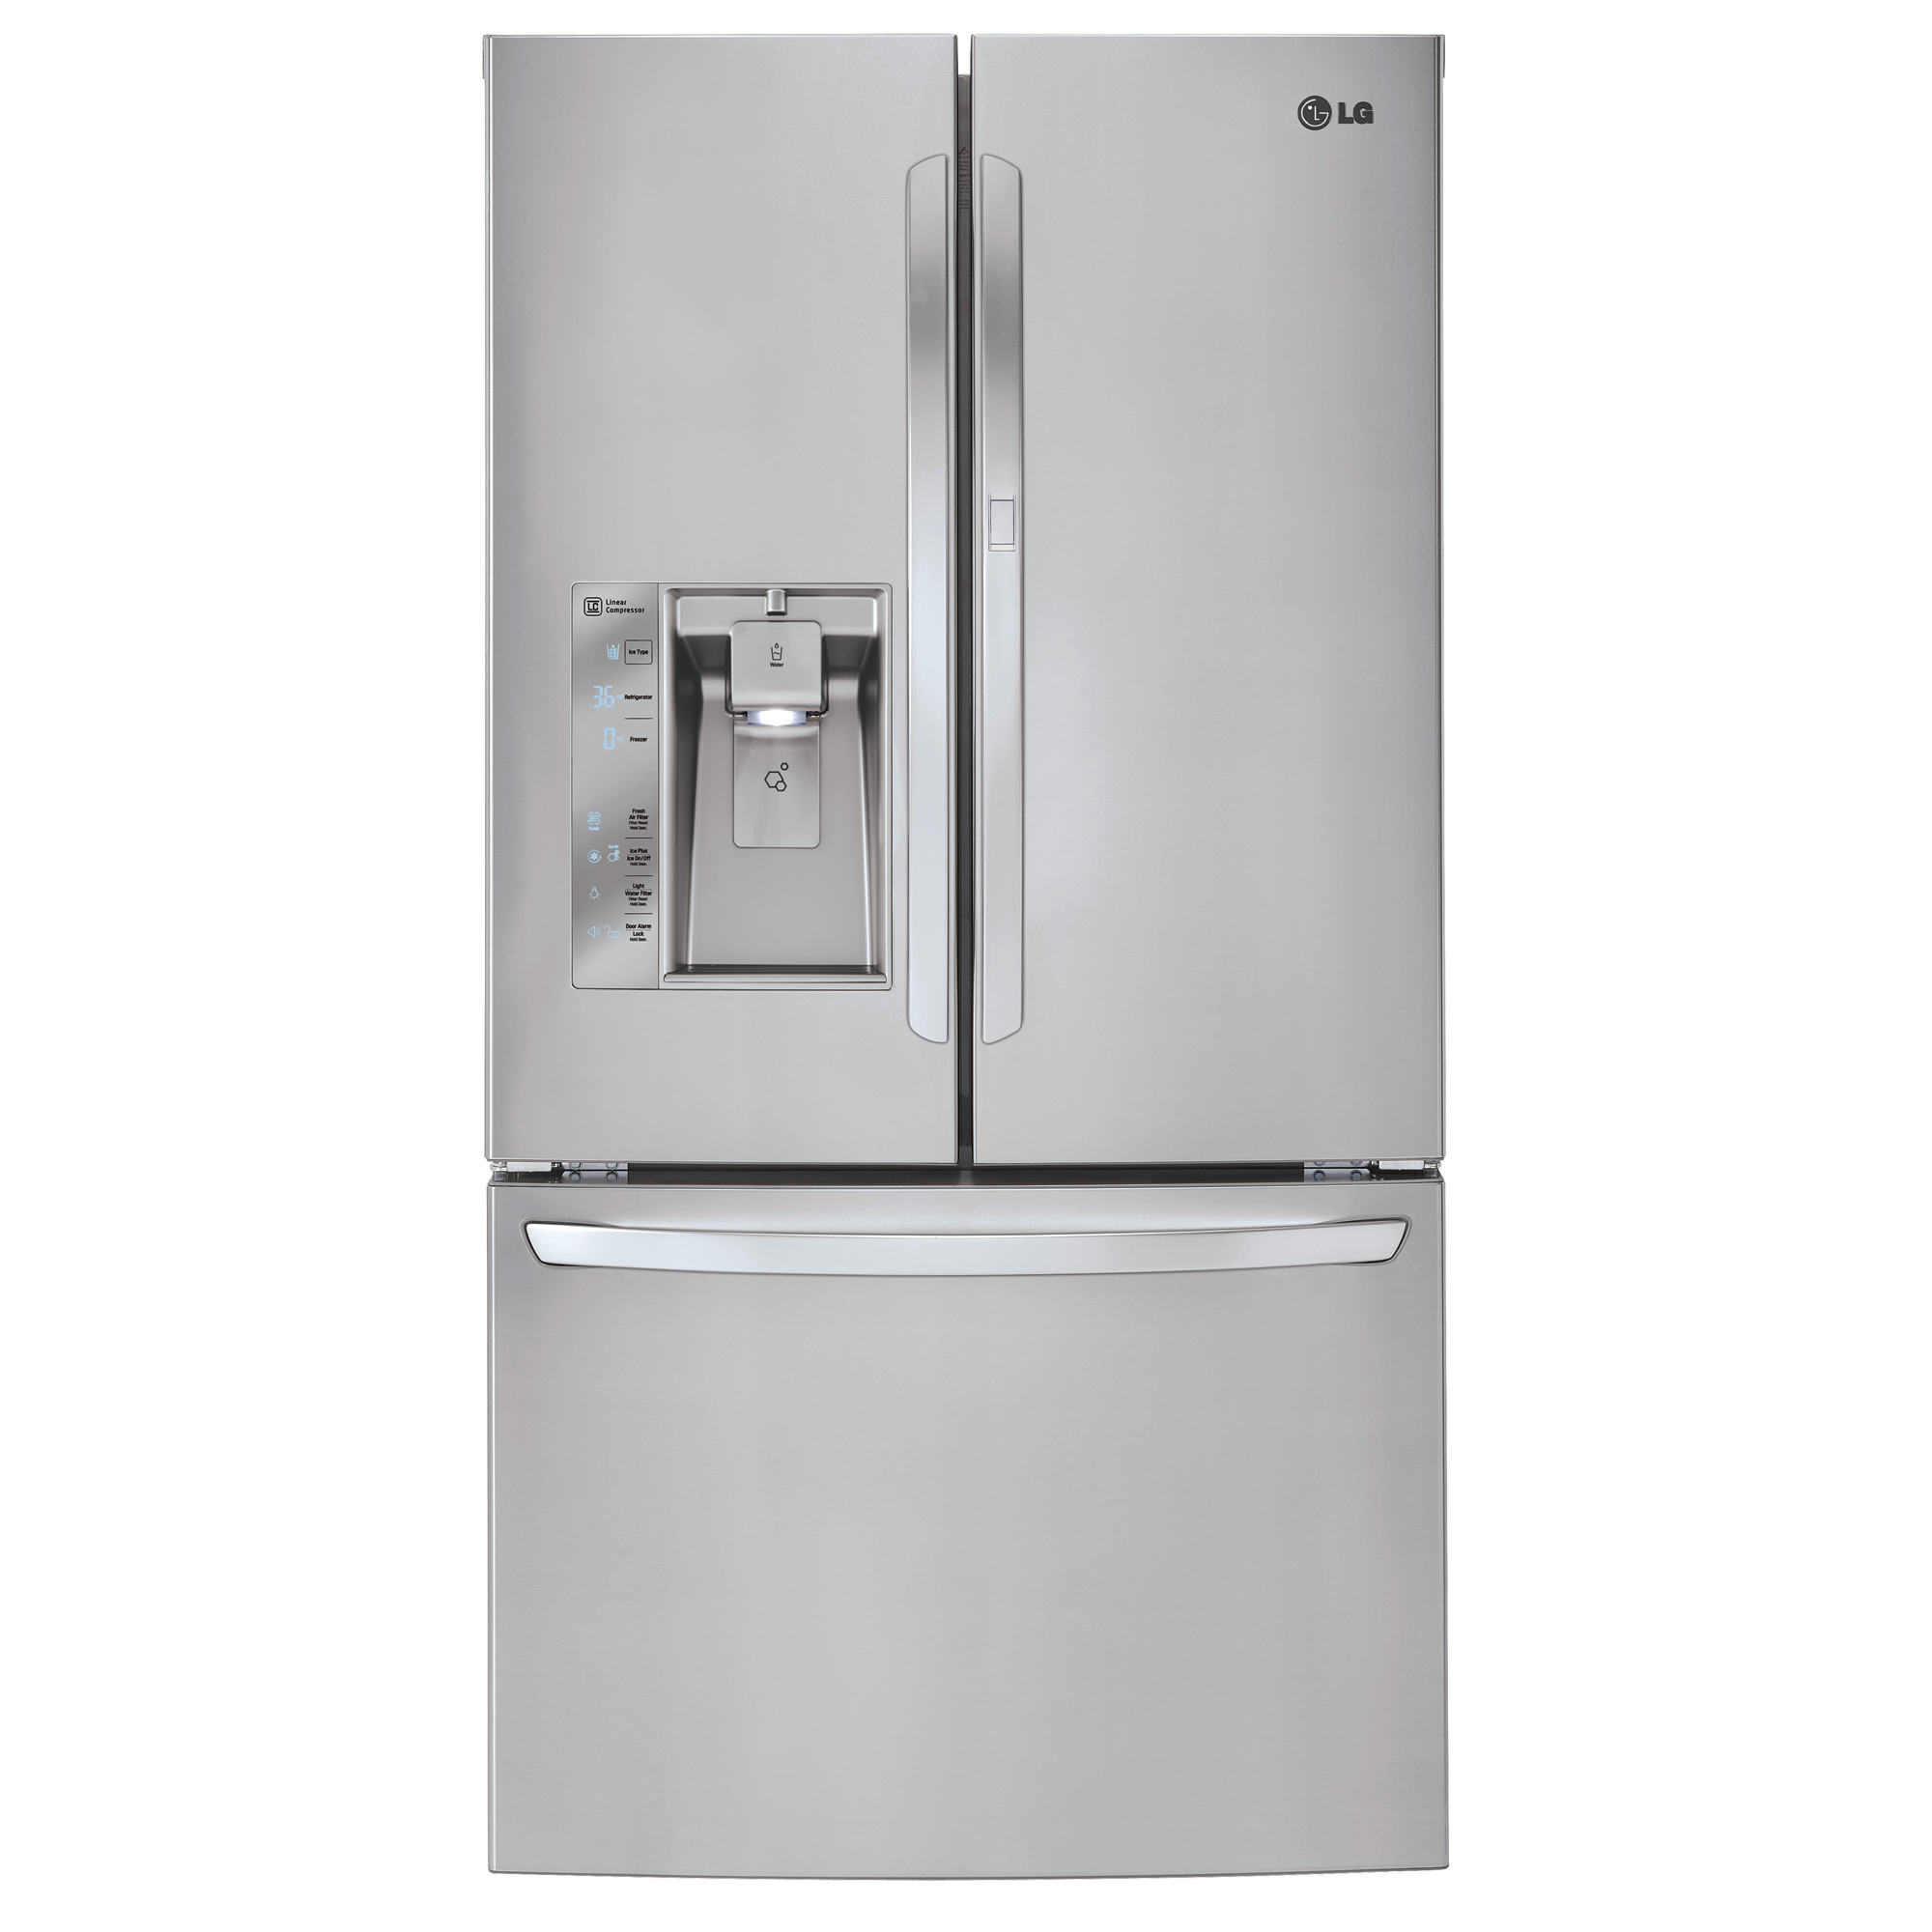 LG LFXS32766S 31.5 cu.ft. Mega-Capacity Door-in-Door™ French Door Refrigerator – Stainless